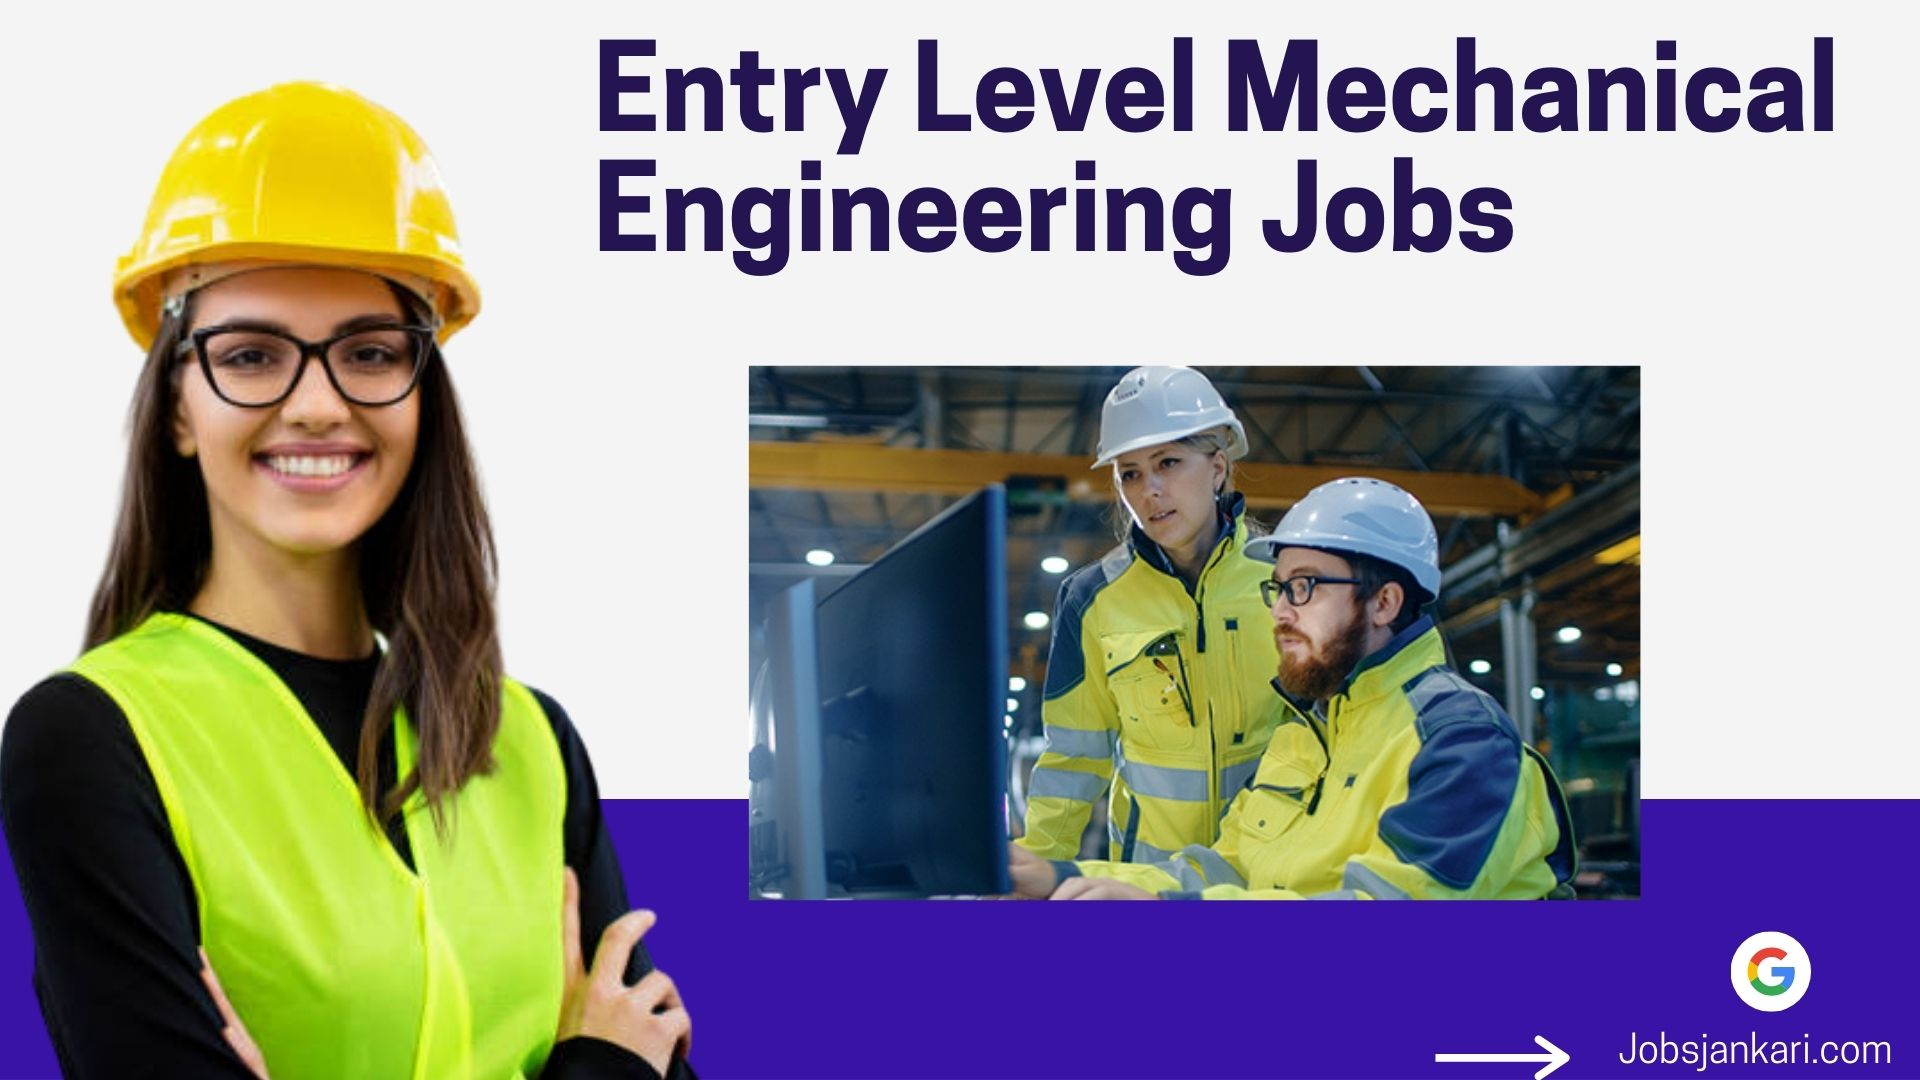 Entry Level Mechanical Engineering Jobs in Texas